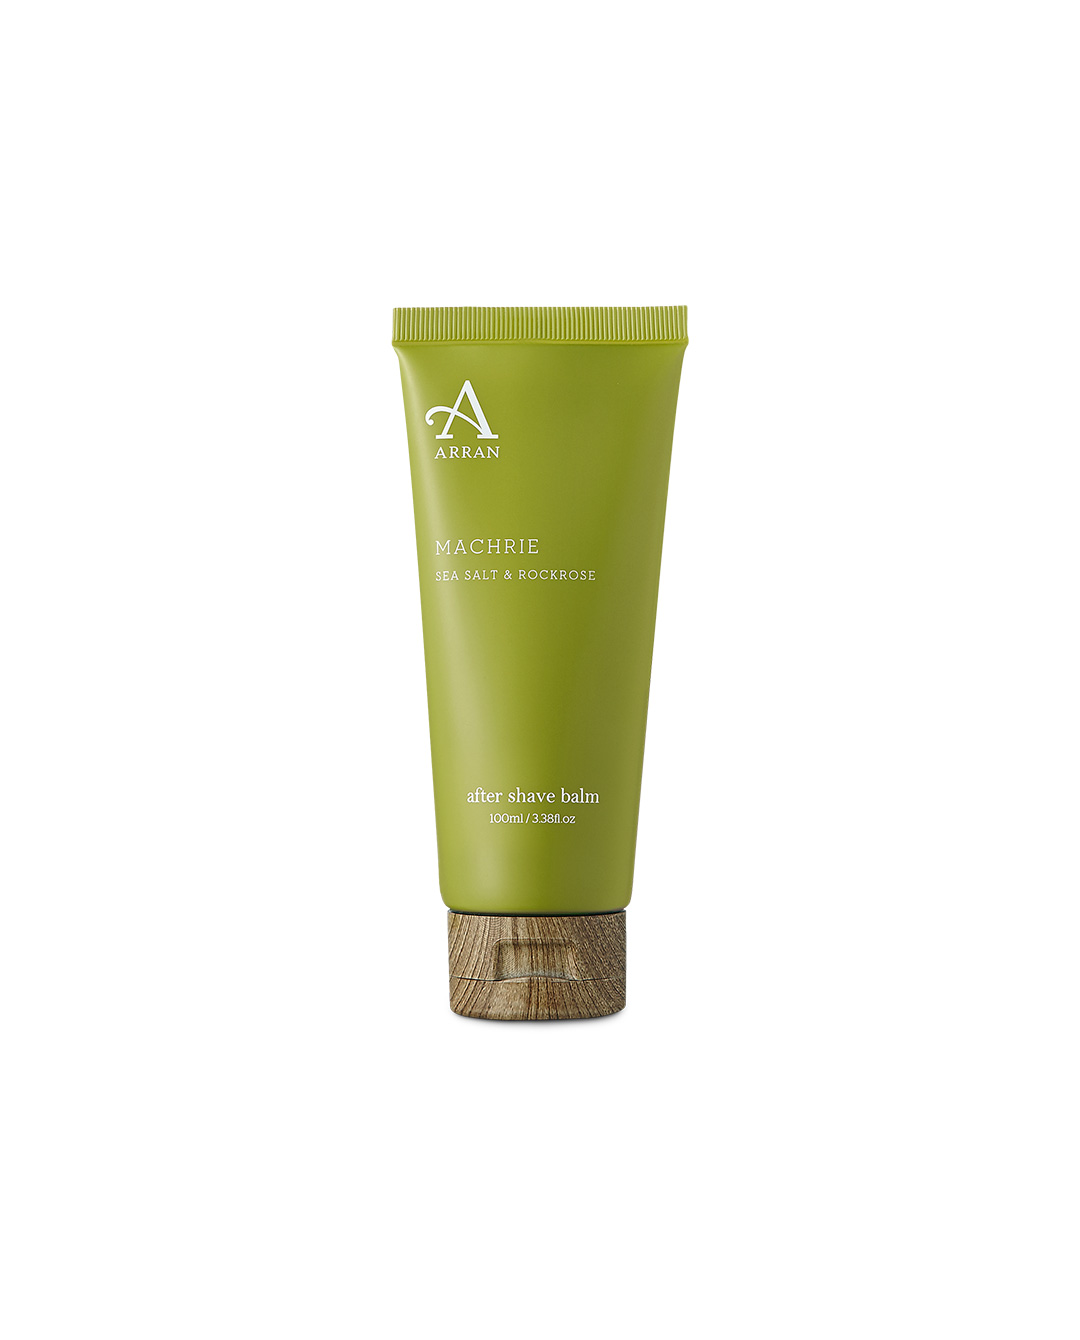 Arran Machrie After Shave Balm 100ml